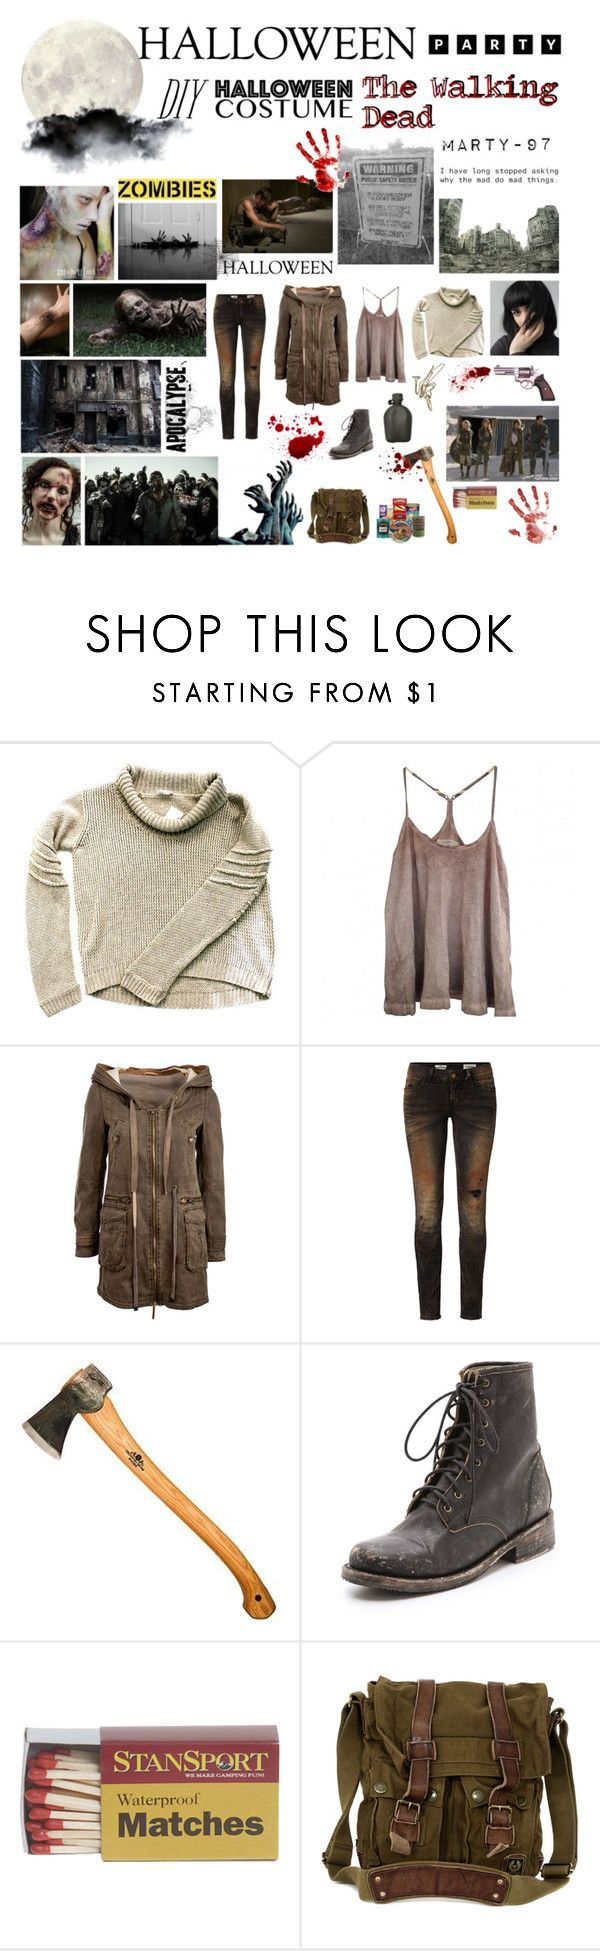 Halloween Party: The Walking Dead! by marty-97 on Polyvore featuring moda, Helmut Lang, AllSaints, Rich & Royal, Steve Madden, Belstaff and E.vil